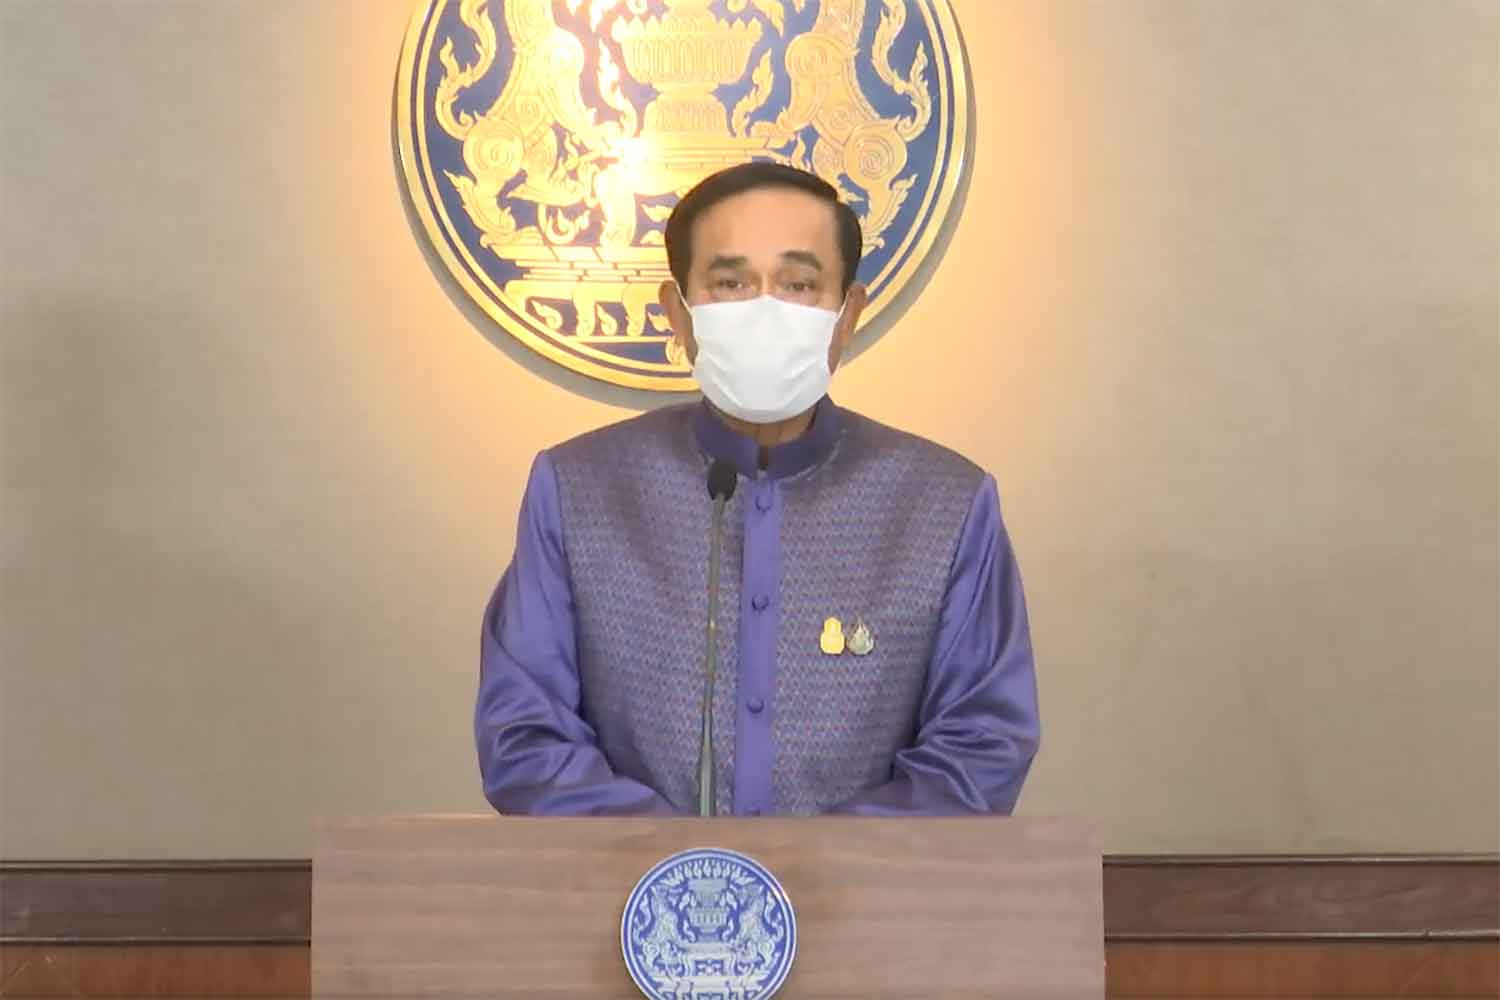 Prime Minister Prayut Chan-o-cha speaks to reporters after the cabinet meeting at Government House in Bangkok on Tuesday. (Screenshot)